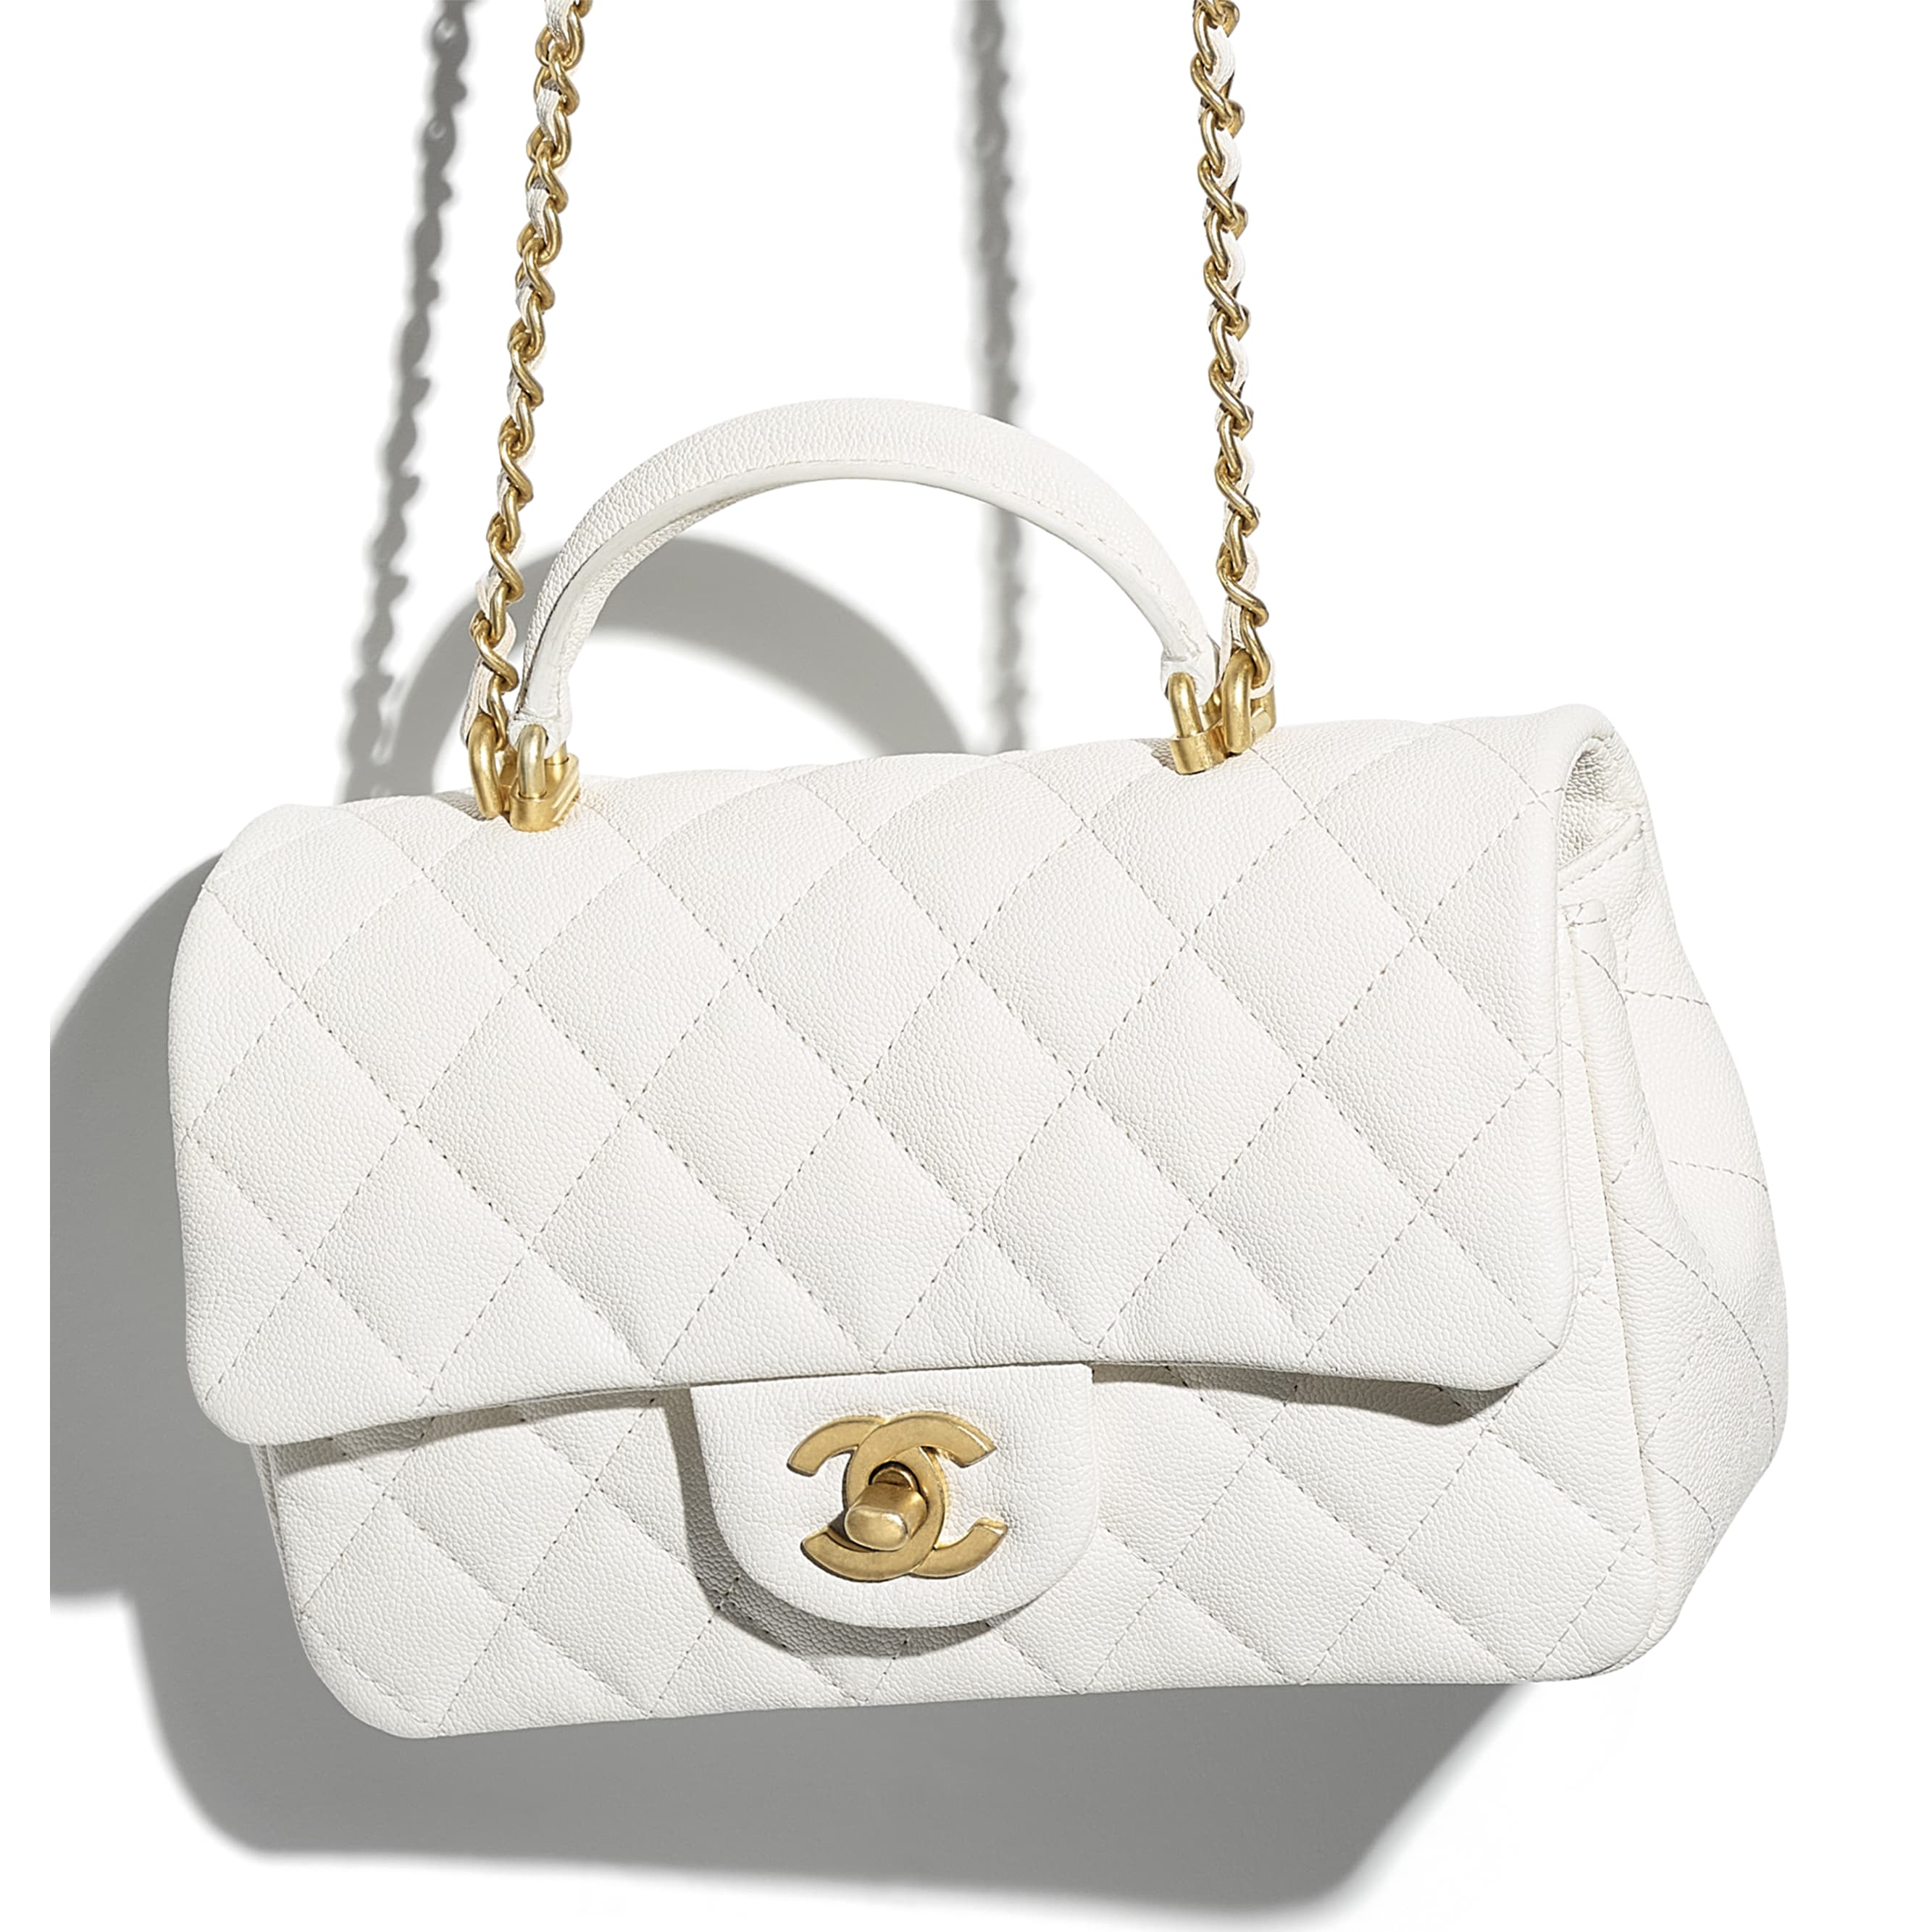 Mini Flap Bag with Top Handle - White - Grained Calfskin & Gold-Tone Metal - CHANEL - Extra view - see standard sized version